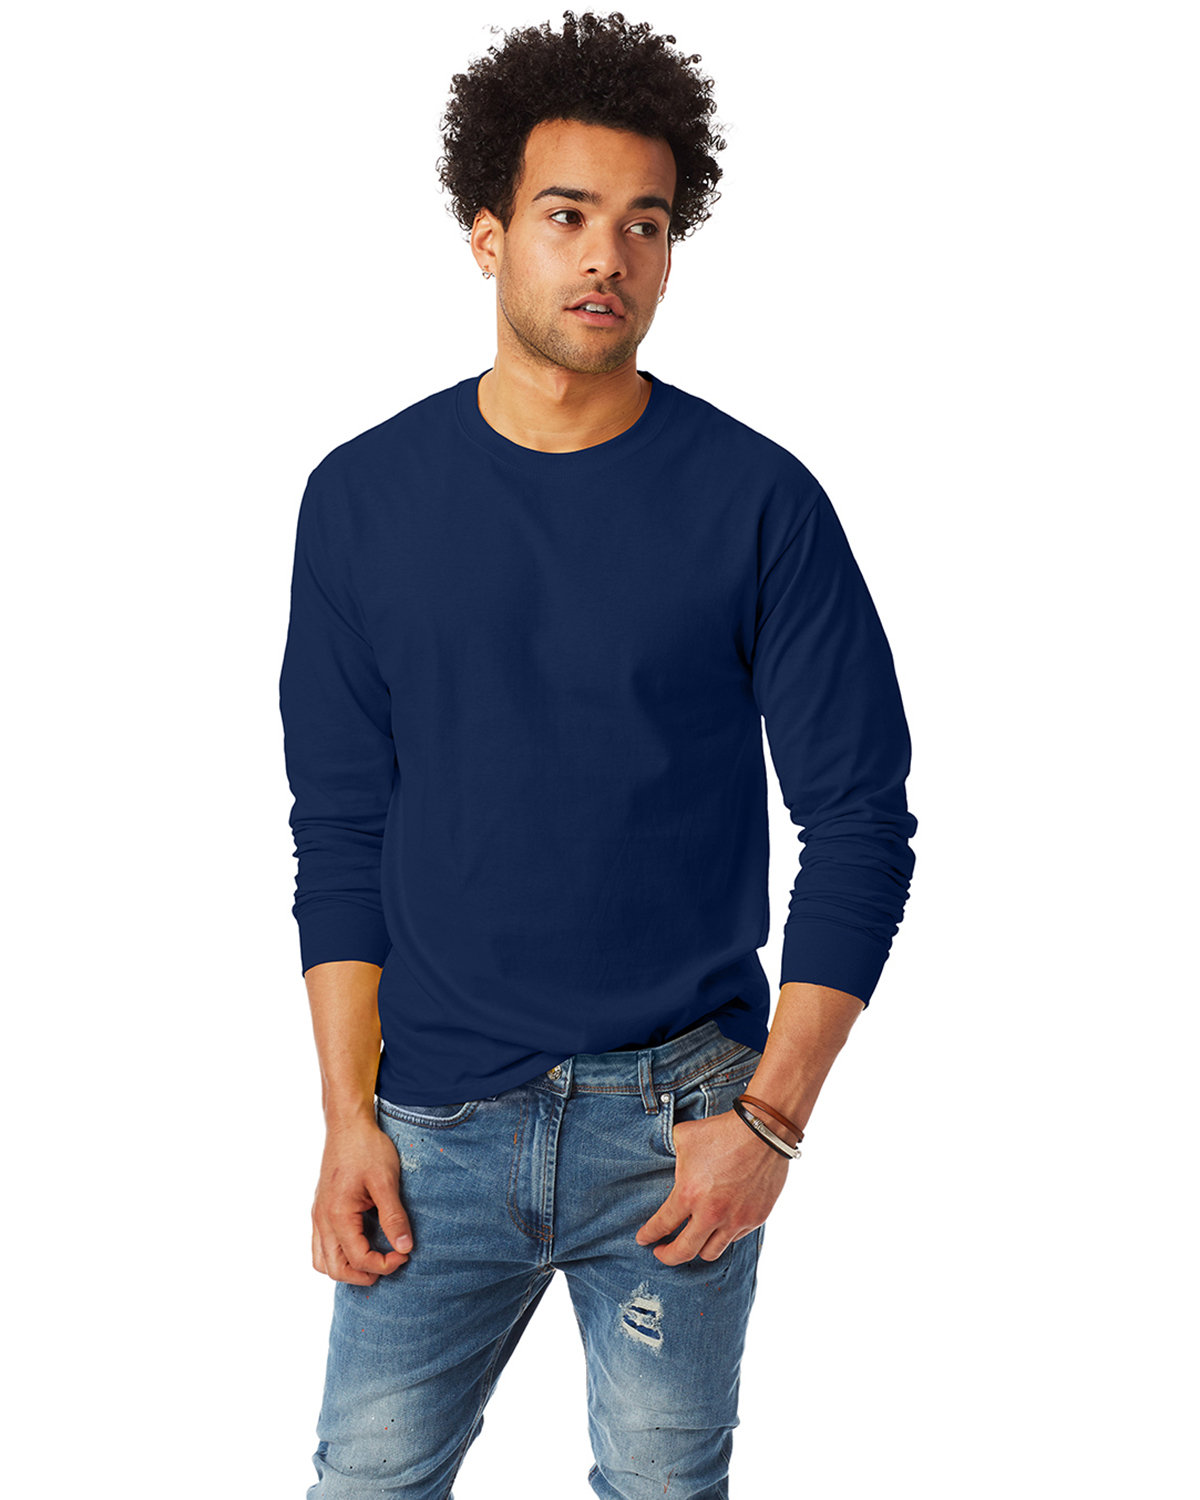 Hanes Adult Authentic-T Long-Sleeve T-Shirt NAVY